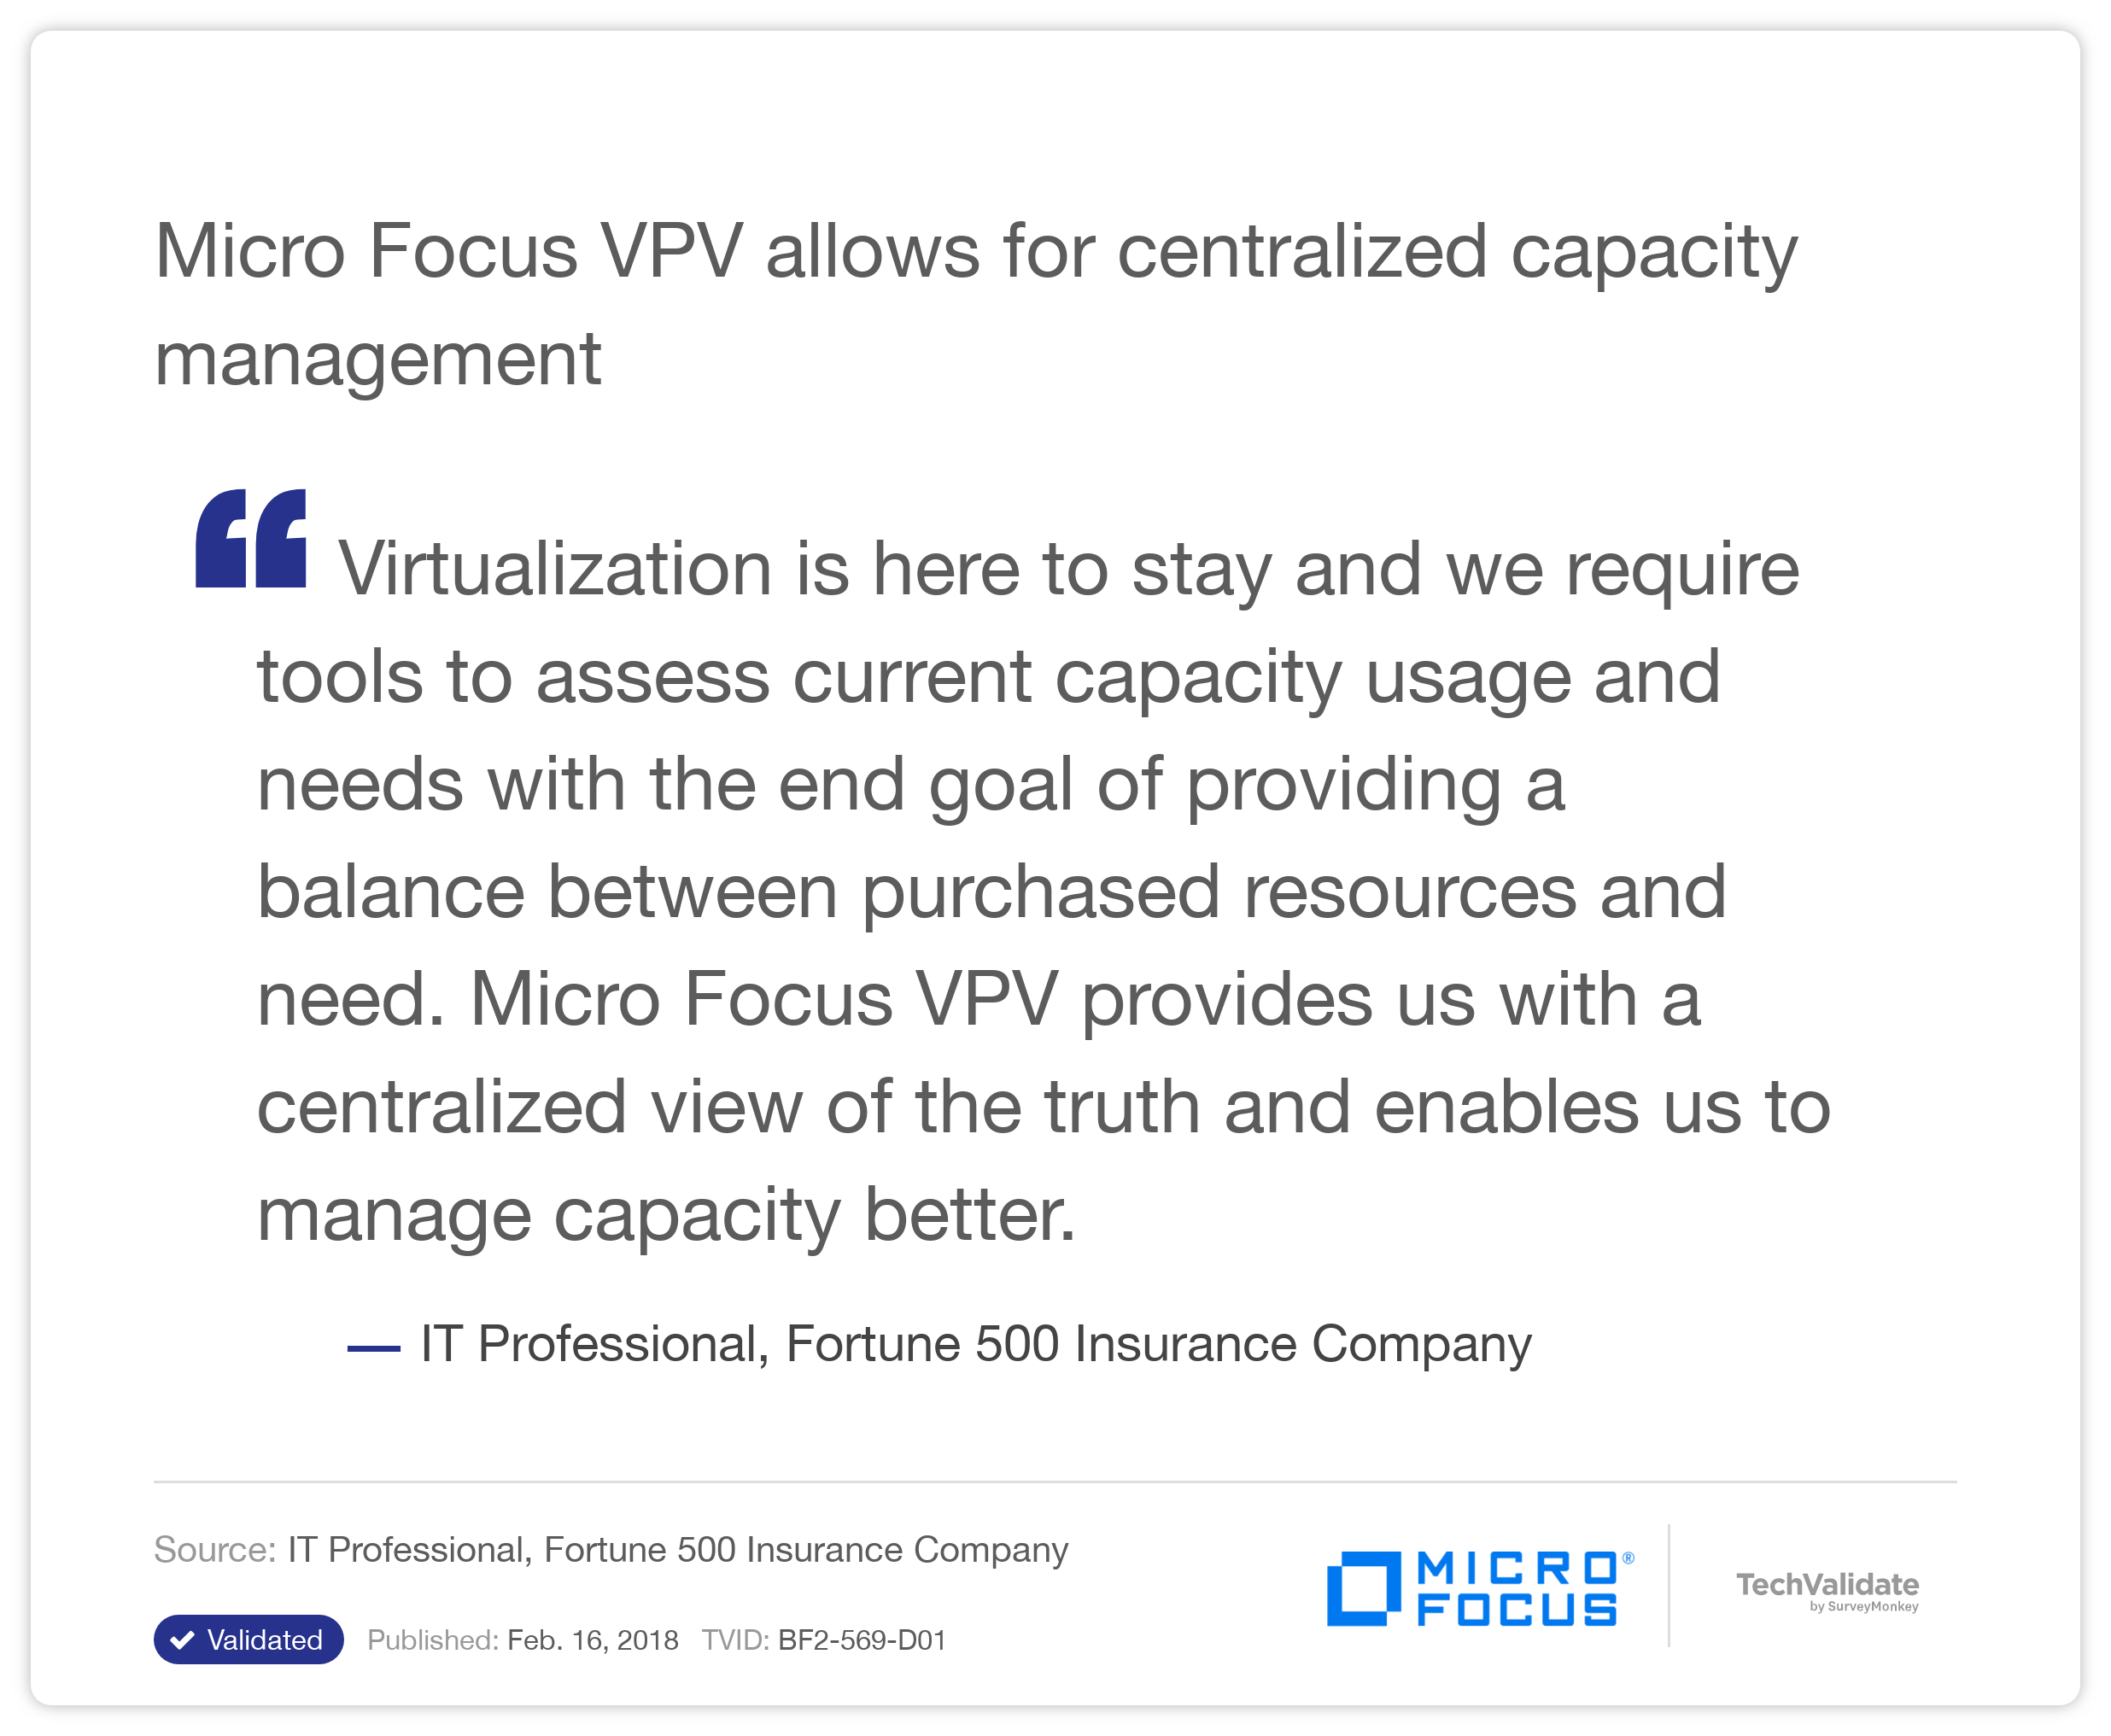 HP VPV allows for centralized capacity management